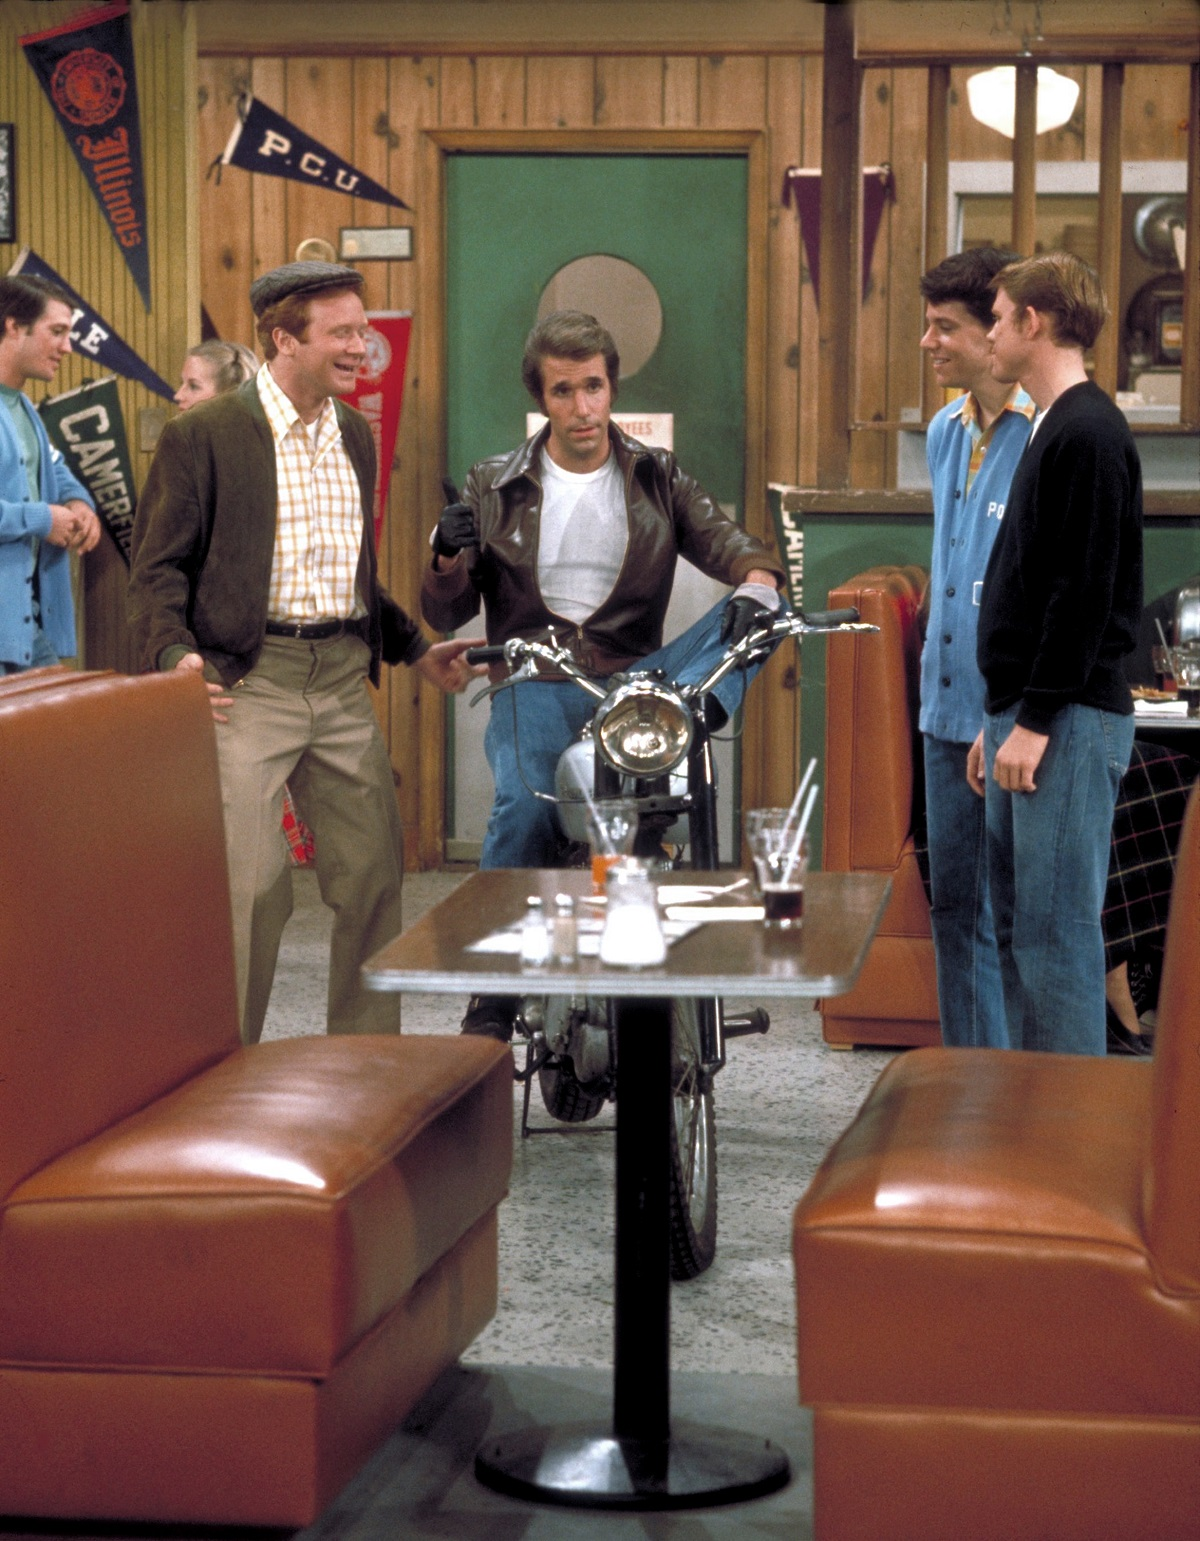 Donny Most, Henry Winkler, Anson Williams and Ron Howard